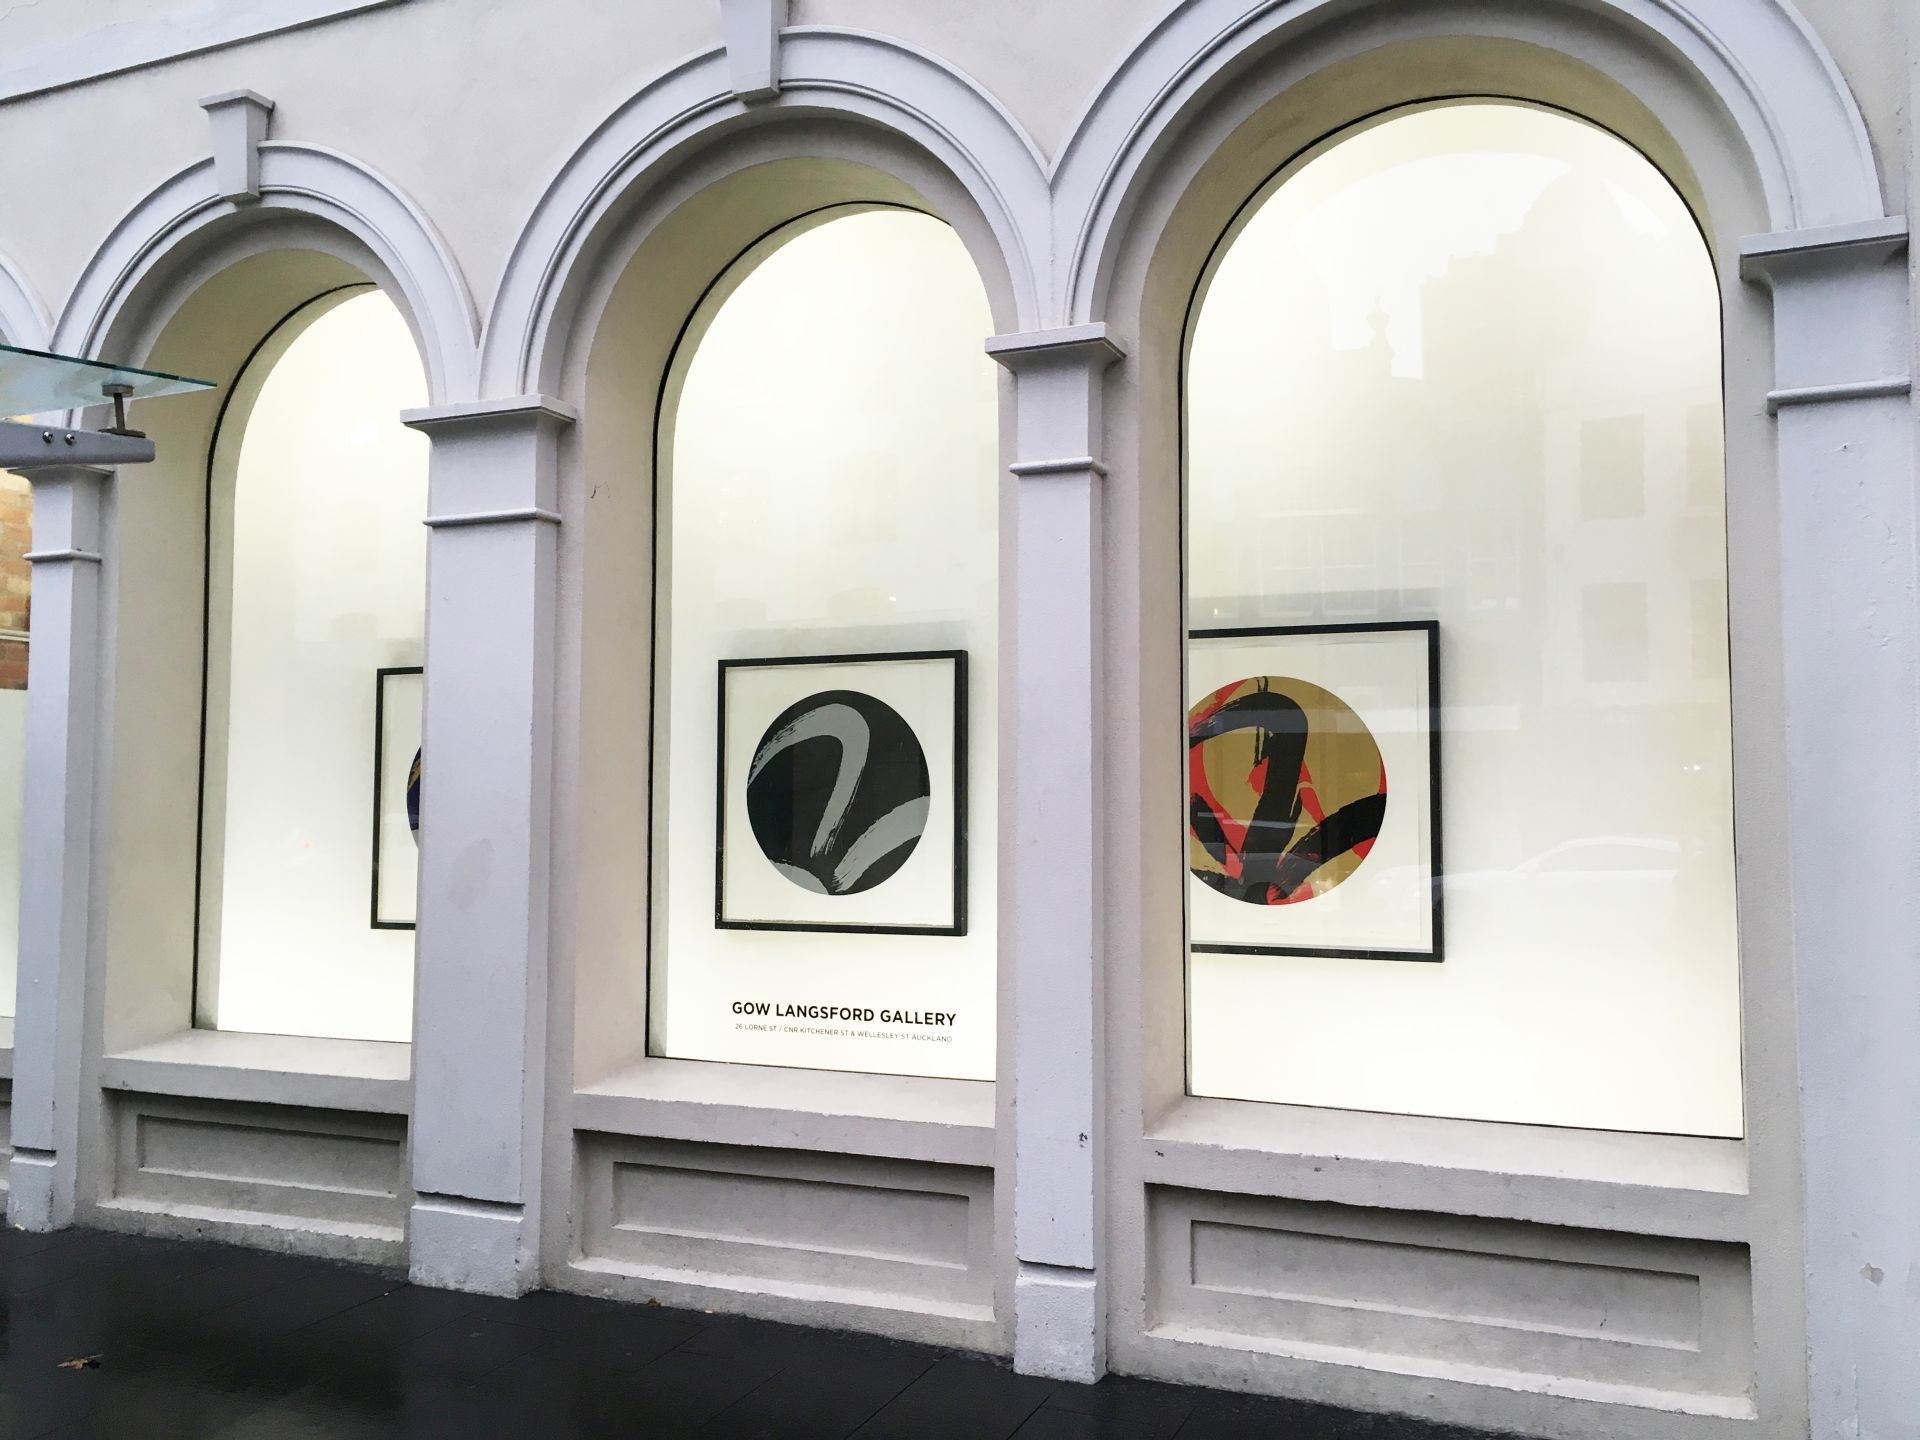 Max Gimblett at Britomart Project Space